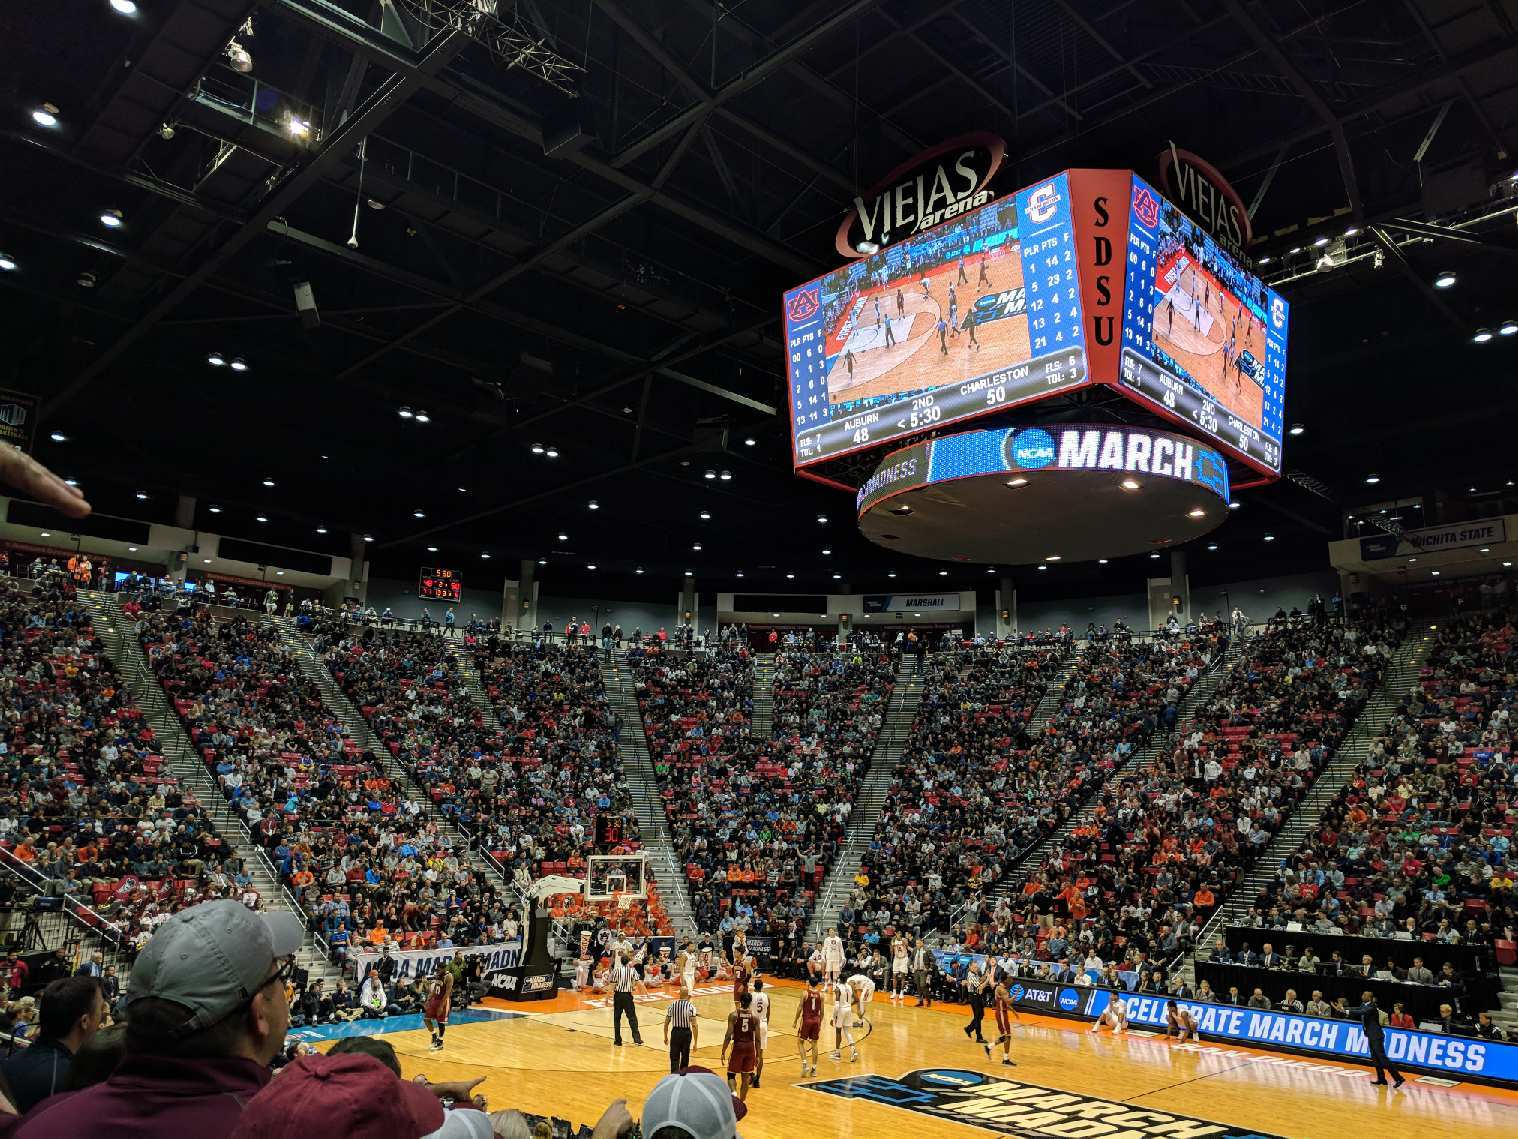 Viejas Arena - College of Charleston vs. Auburn